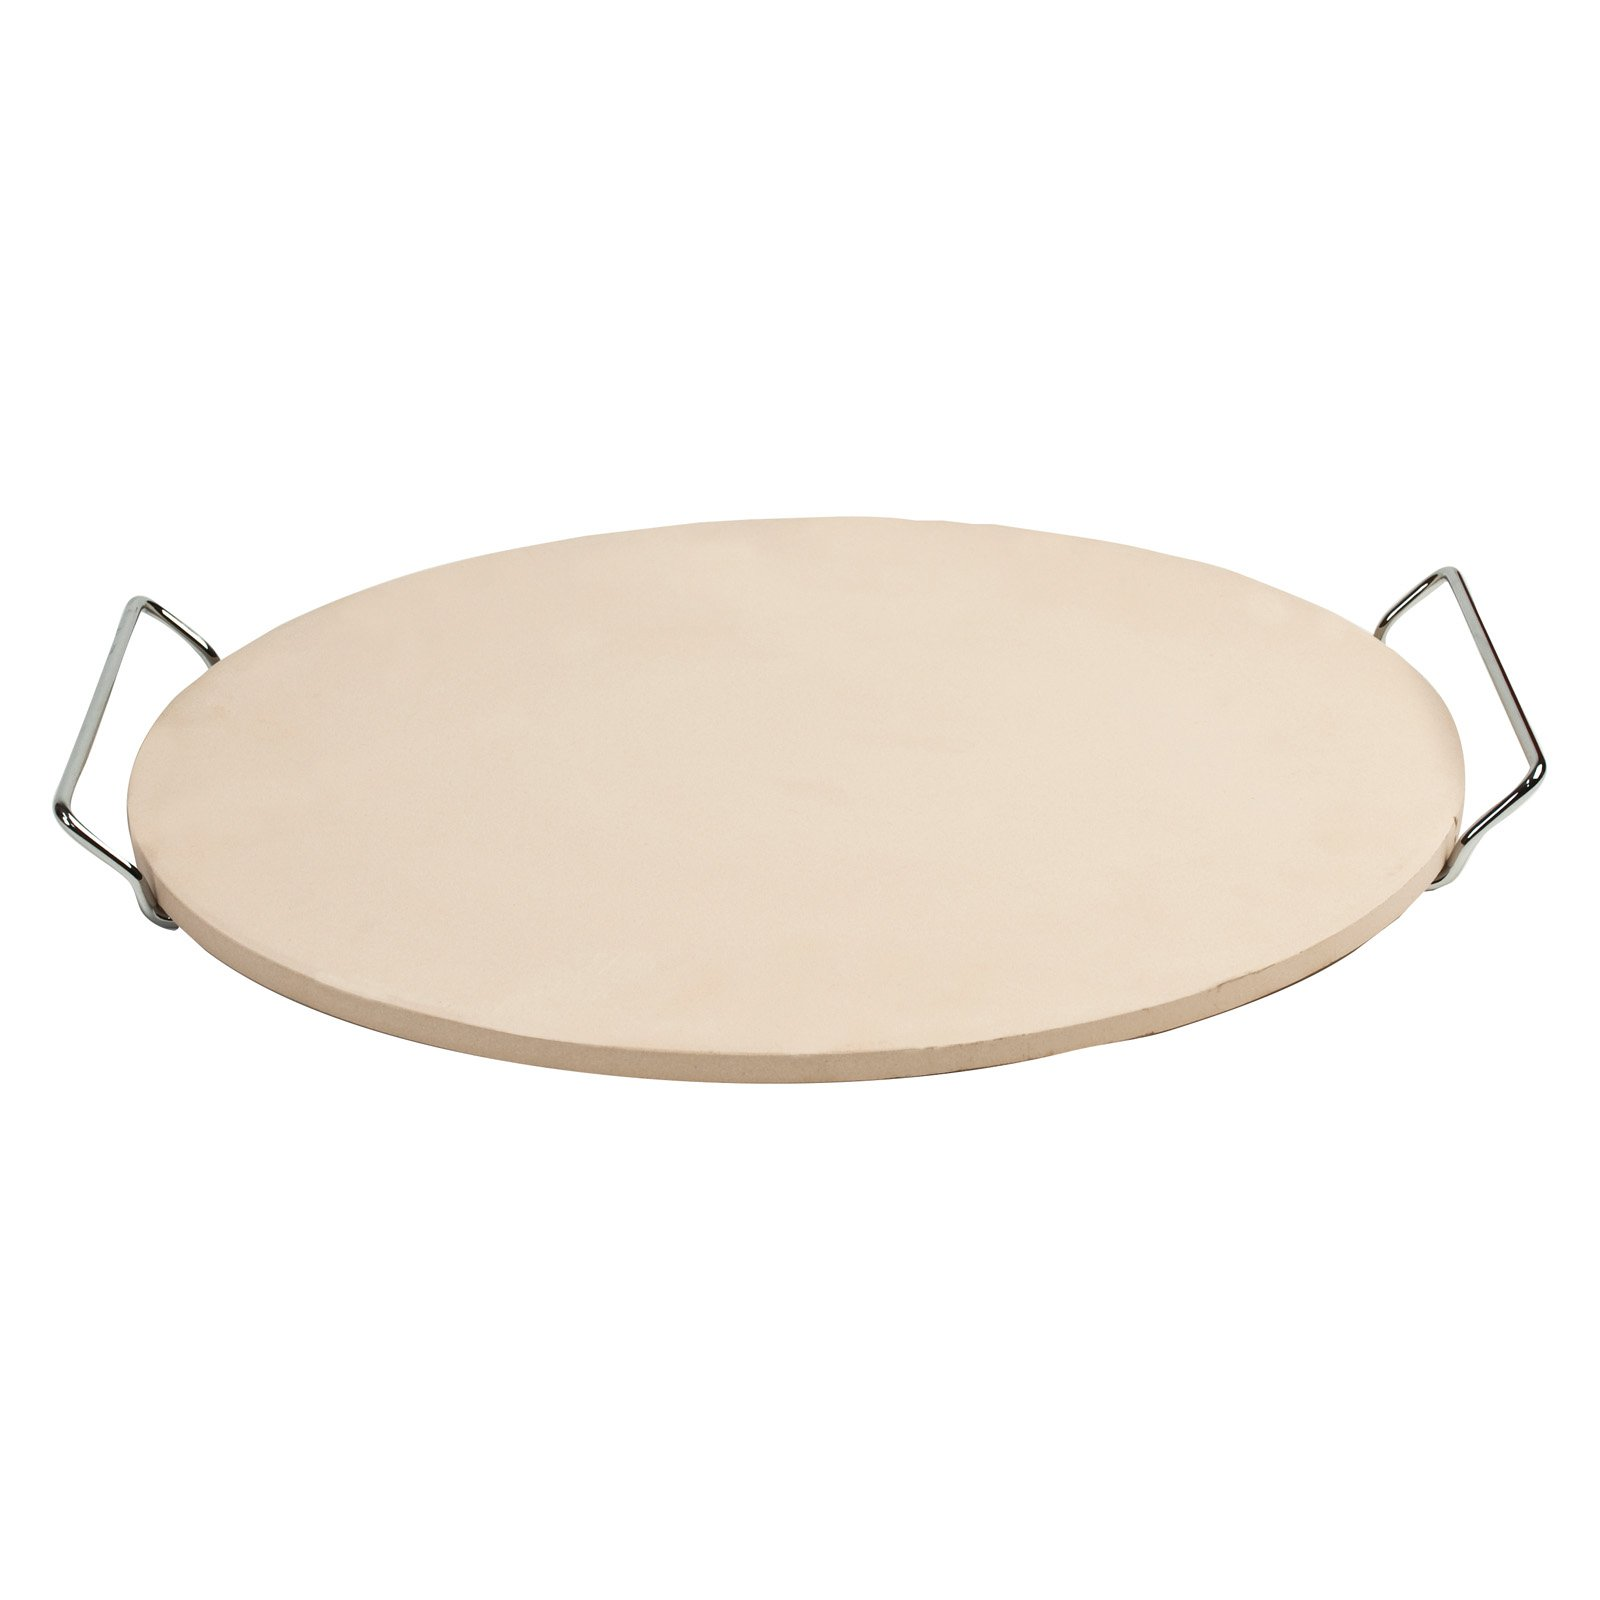 """Pizzacraft 15"""" Round Ceramic Pizza Stone and Baking Stone with Wire Frame, for Oven, Grill, or BBQ-PC0001"""